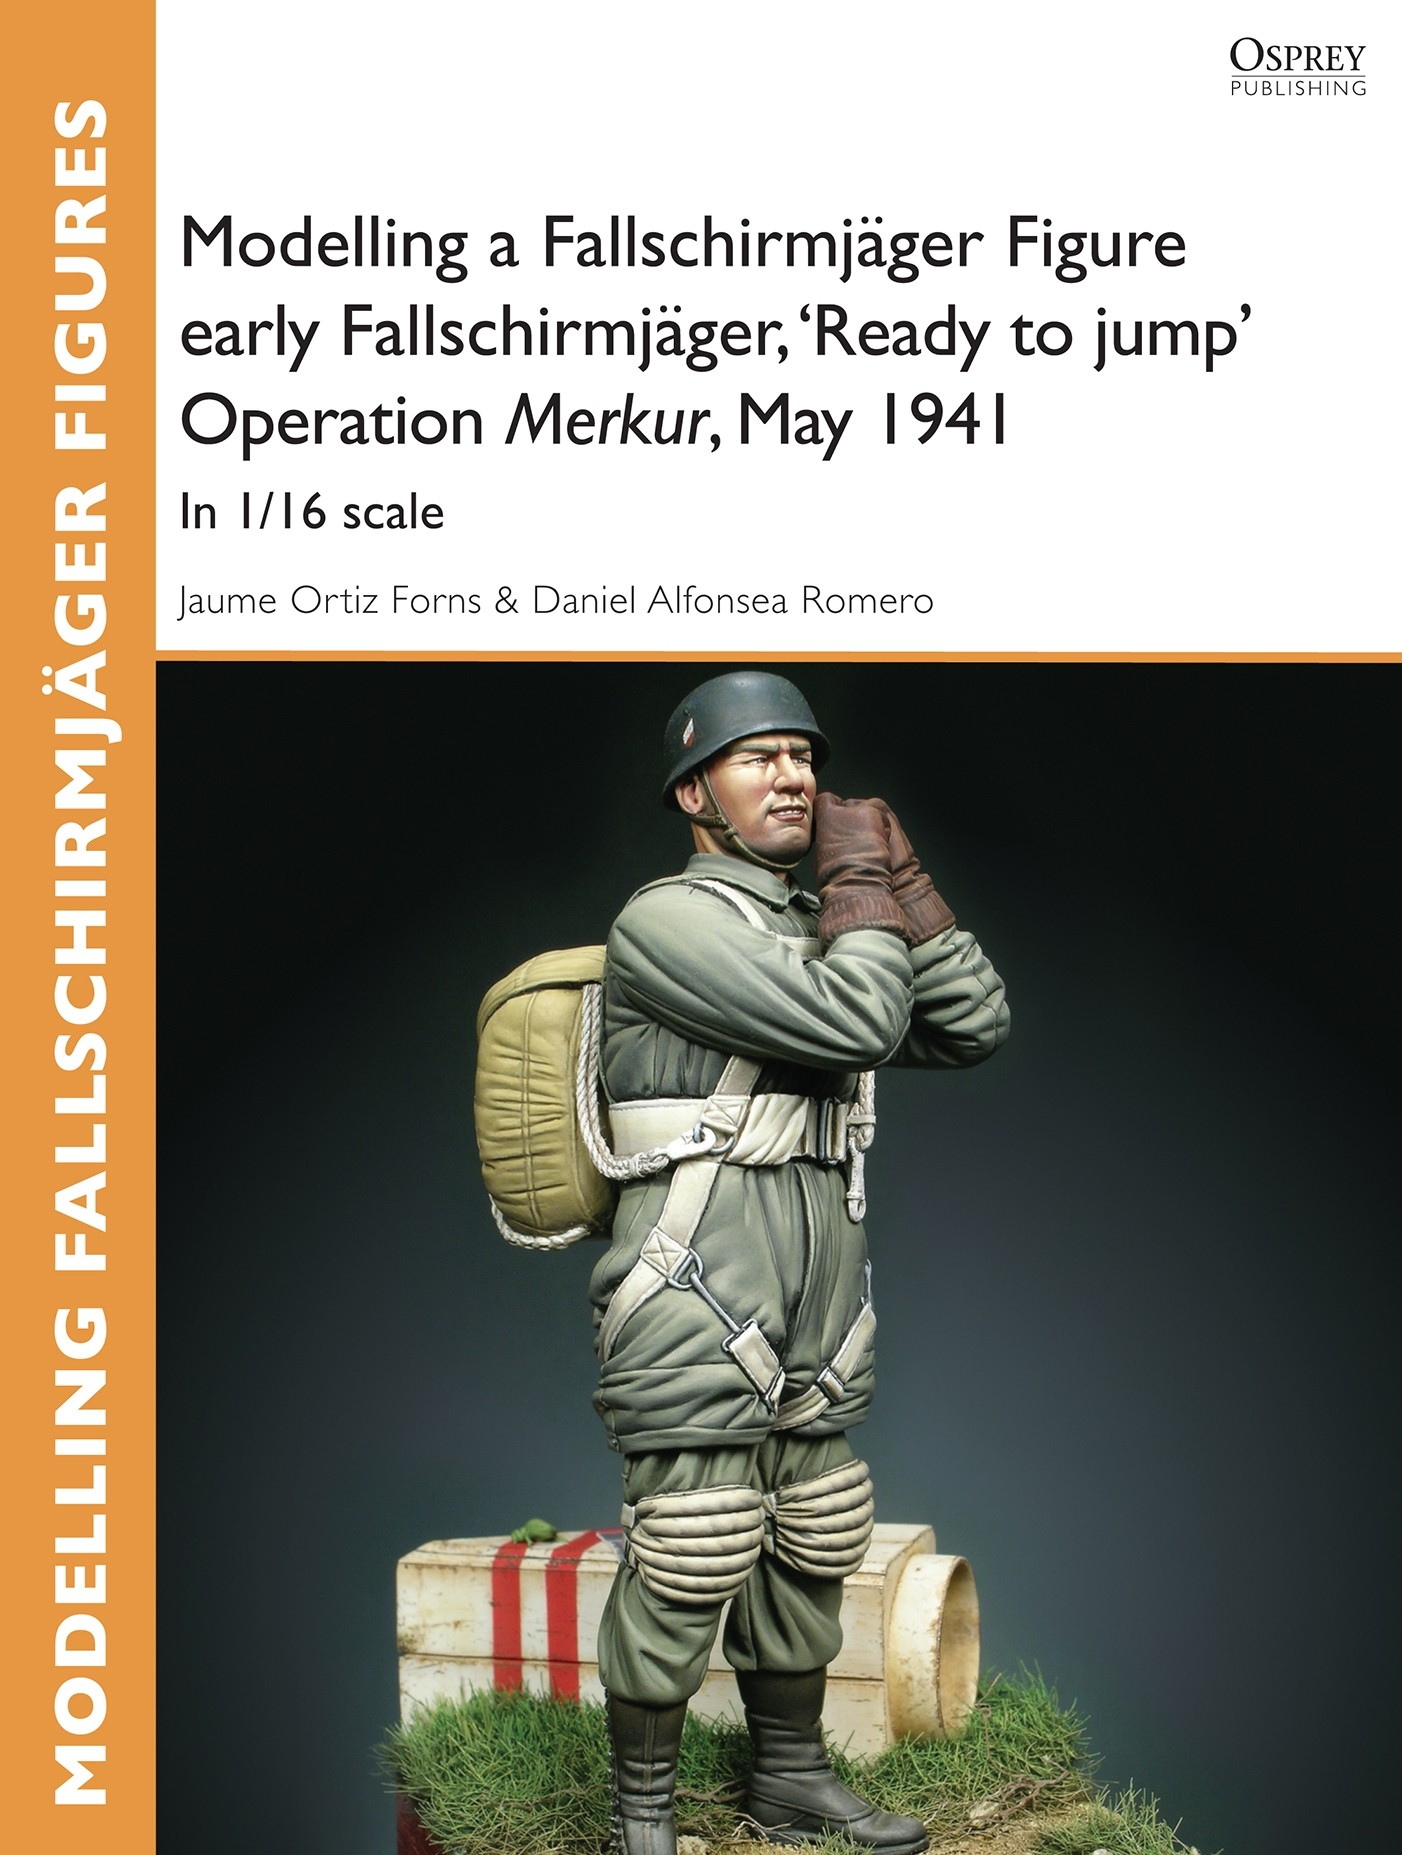 Modelling a Fallschirmjäger Figure early Fallschirmjäger, 'Ready to jump' Operation Merkur, May 1941